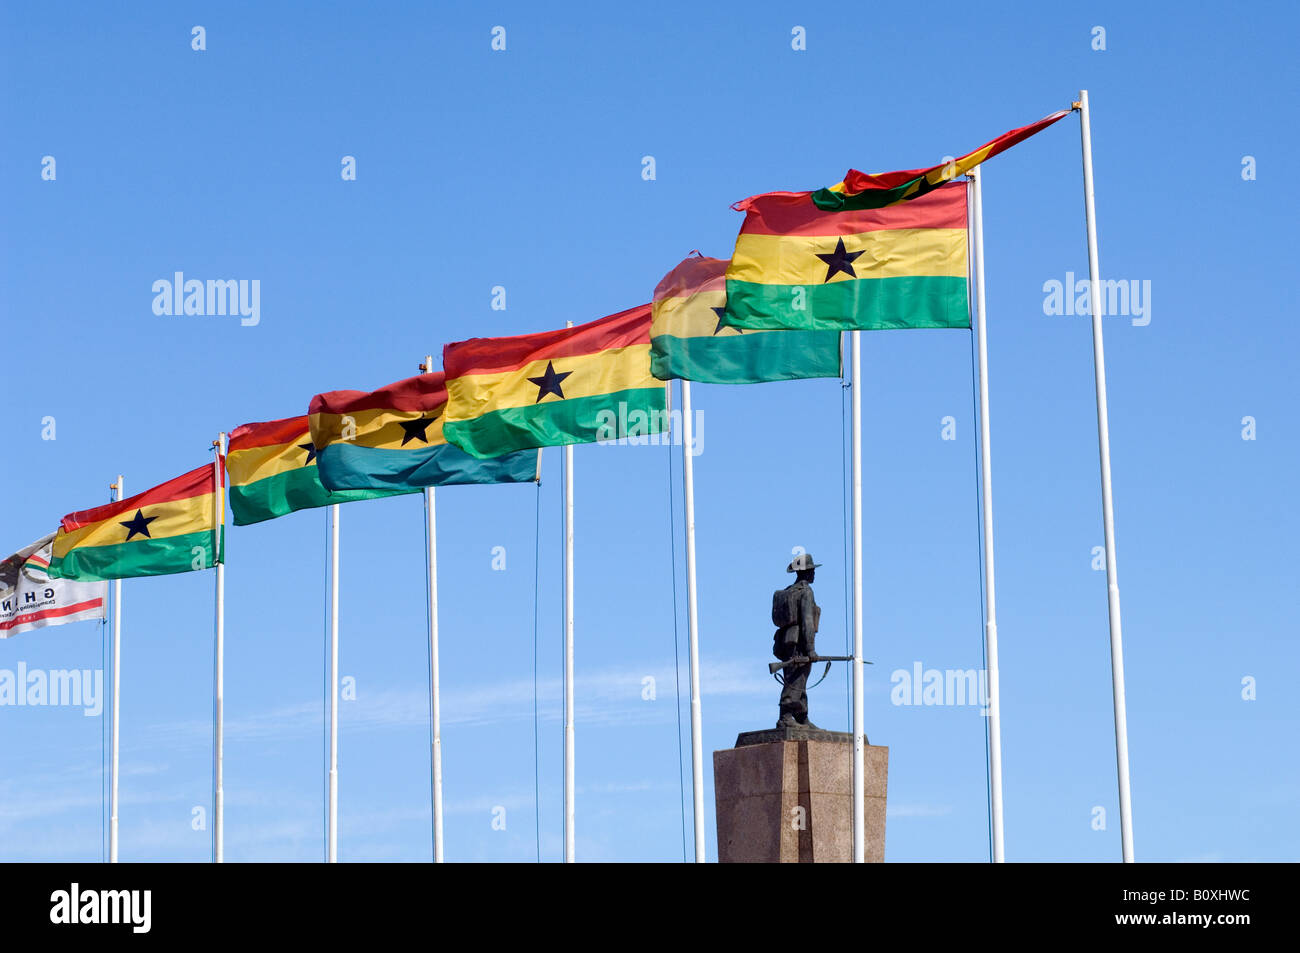 Statue of the unknown soldier, Independence Square, Accra, Ghana - Stock Image